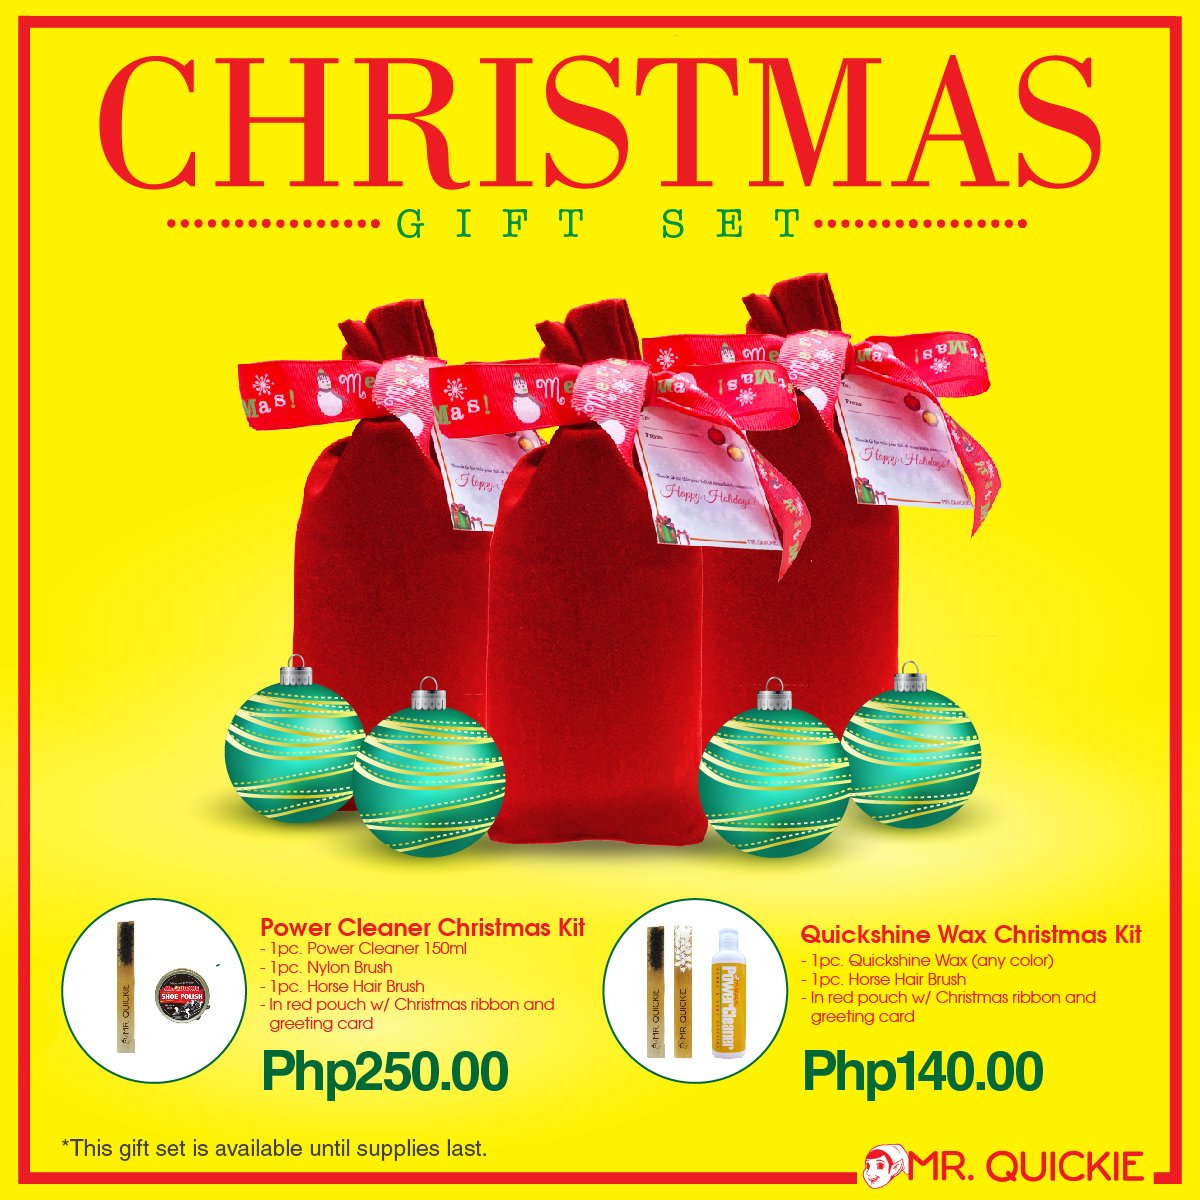 Mr quickie on twitter its the season of giving and sharing dru dkfumaa2zdcg kristyandbryce Image collections